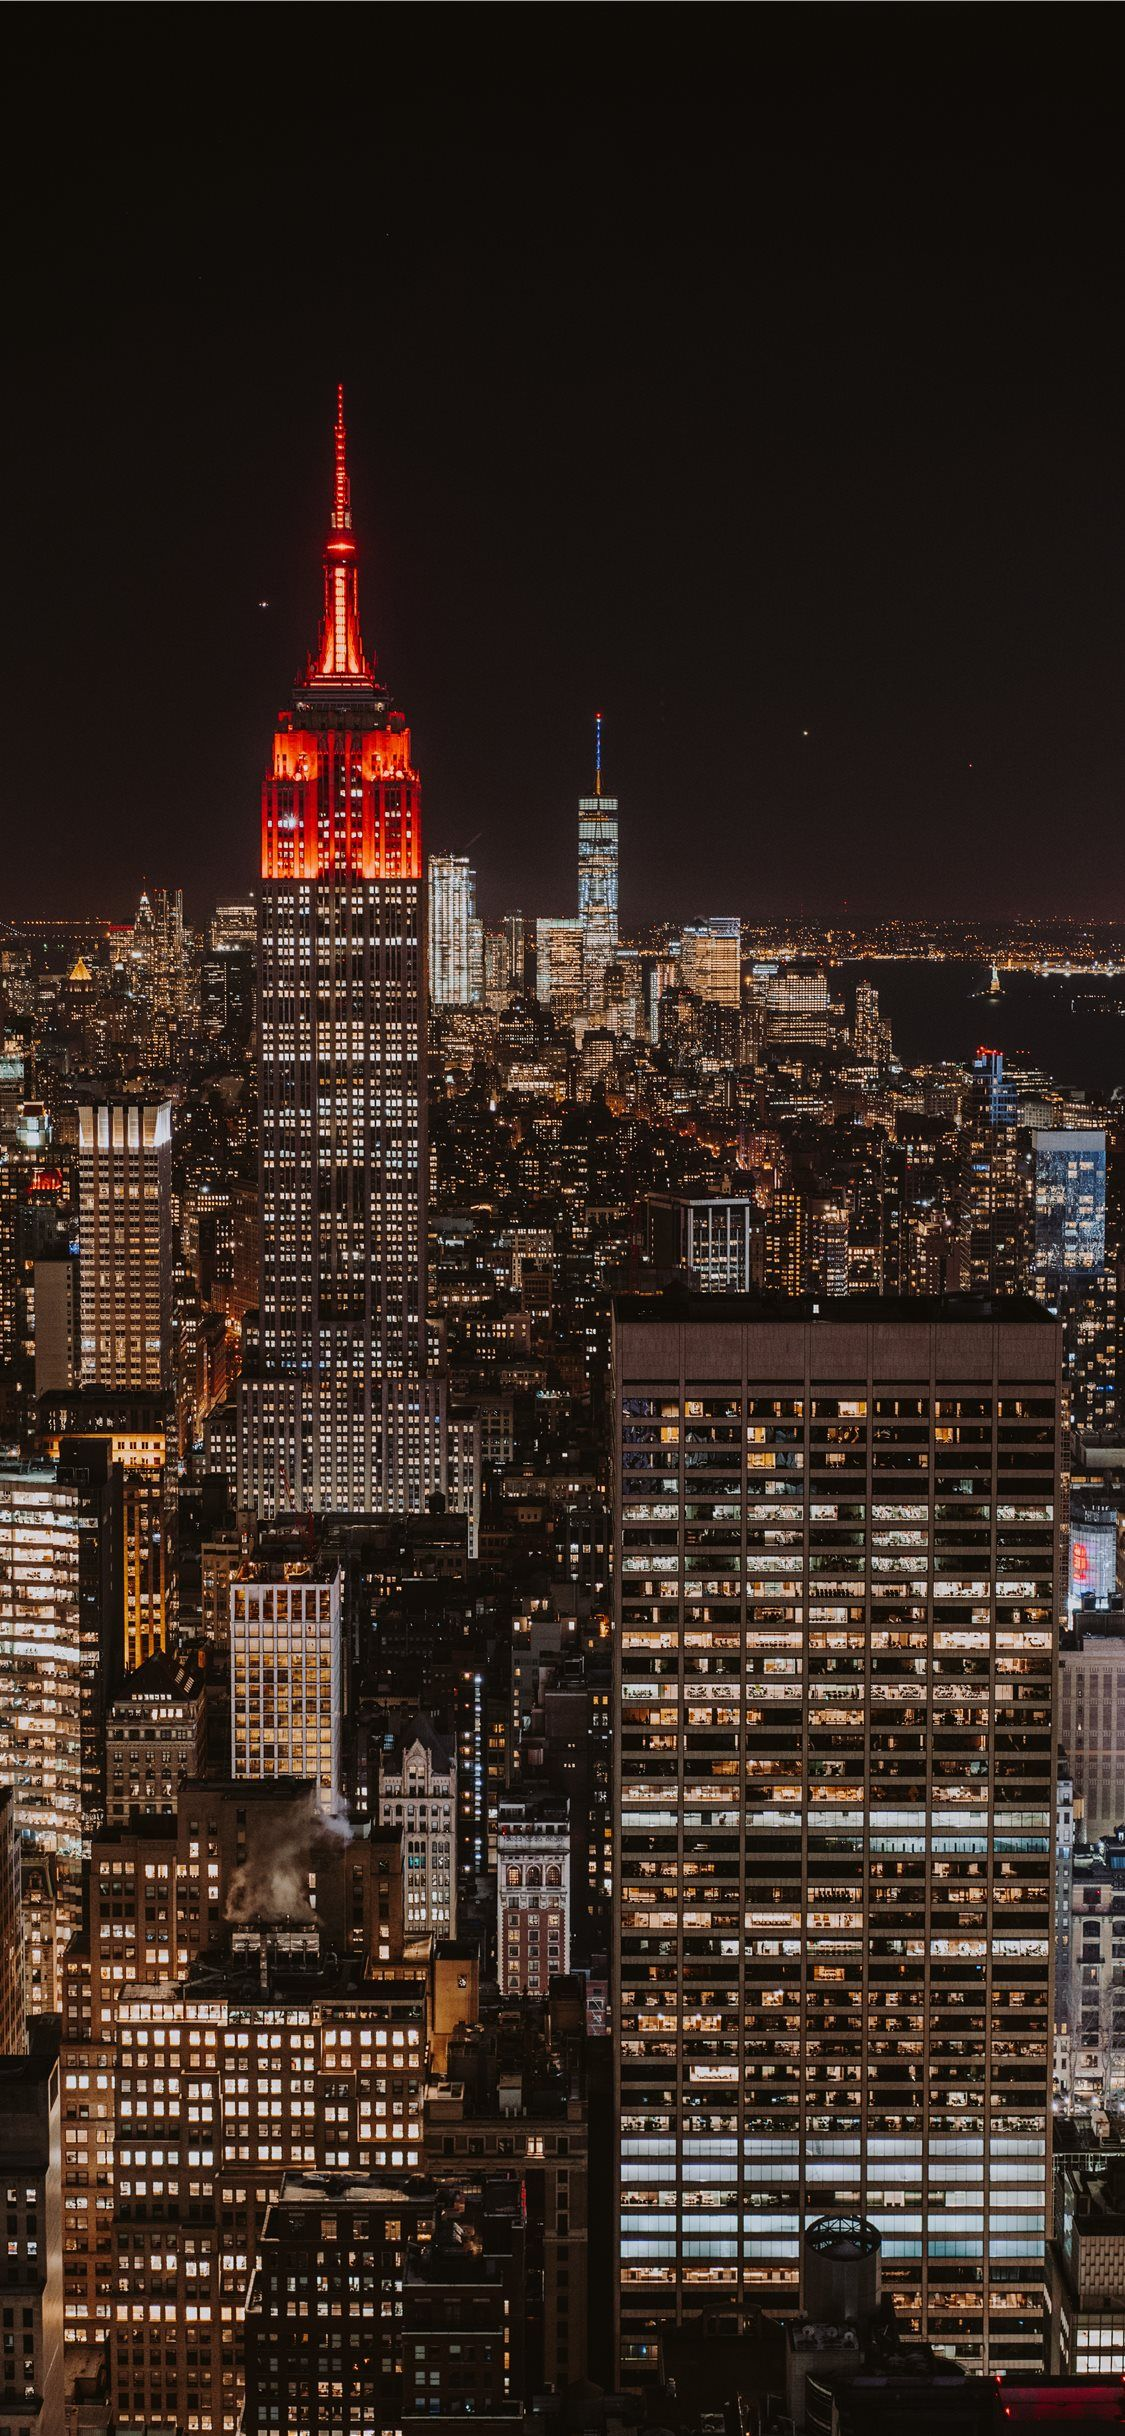 New York Skyline Iphone Wallpapers Top Free New York Skyline Iphone Backgrounds Wallpaperaccess